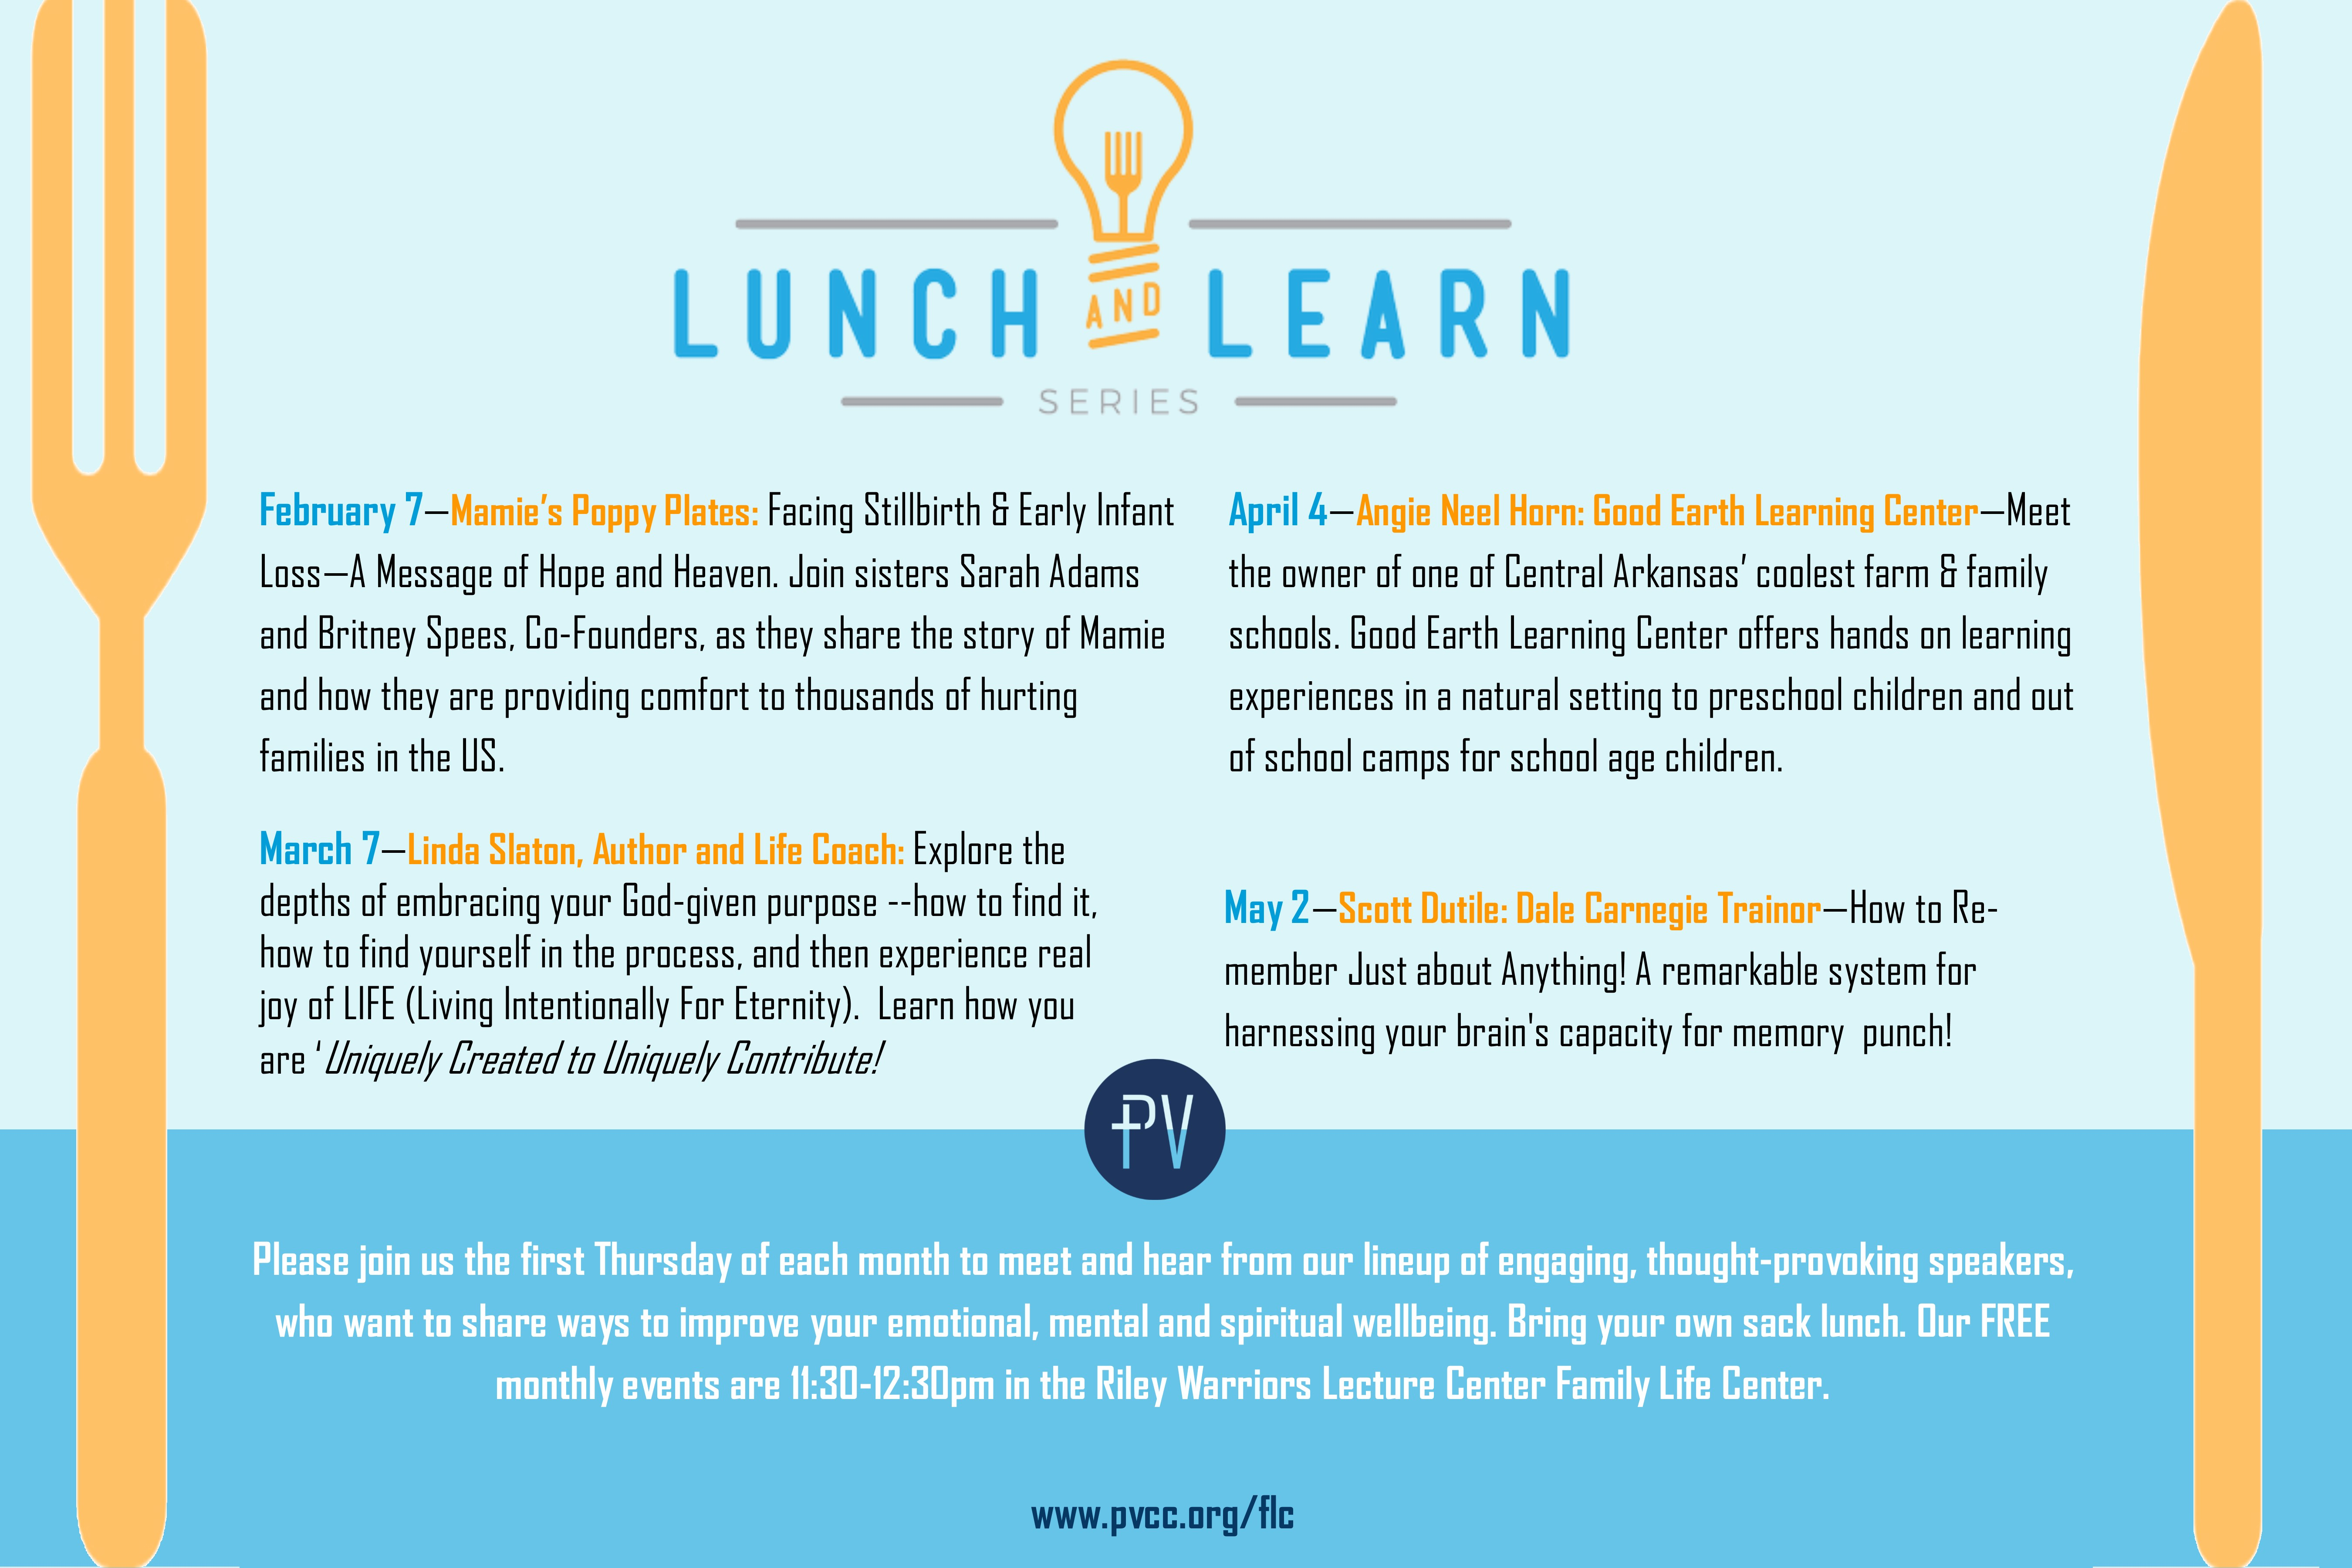 lunchlearnposter2019Q1 pub - PV Church of Christ